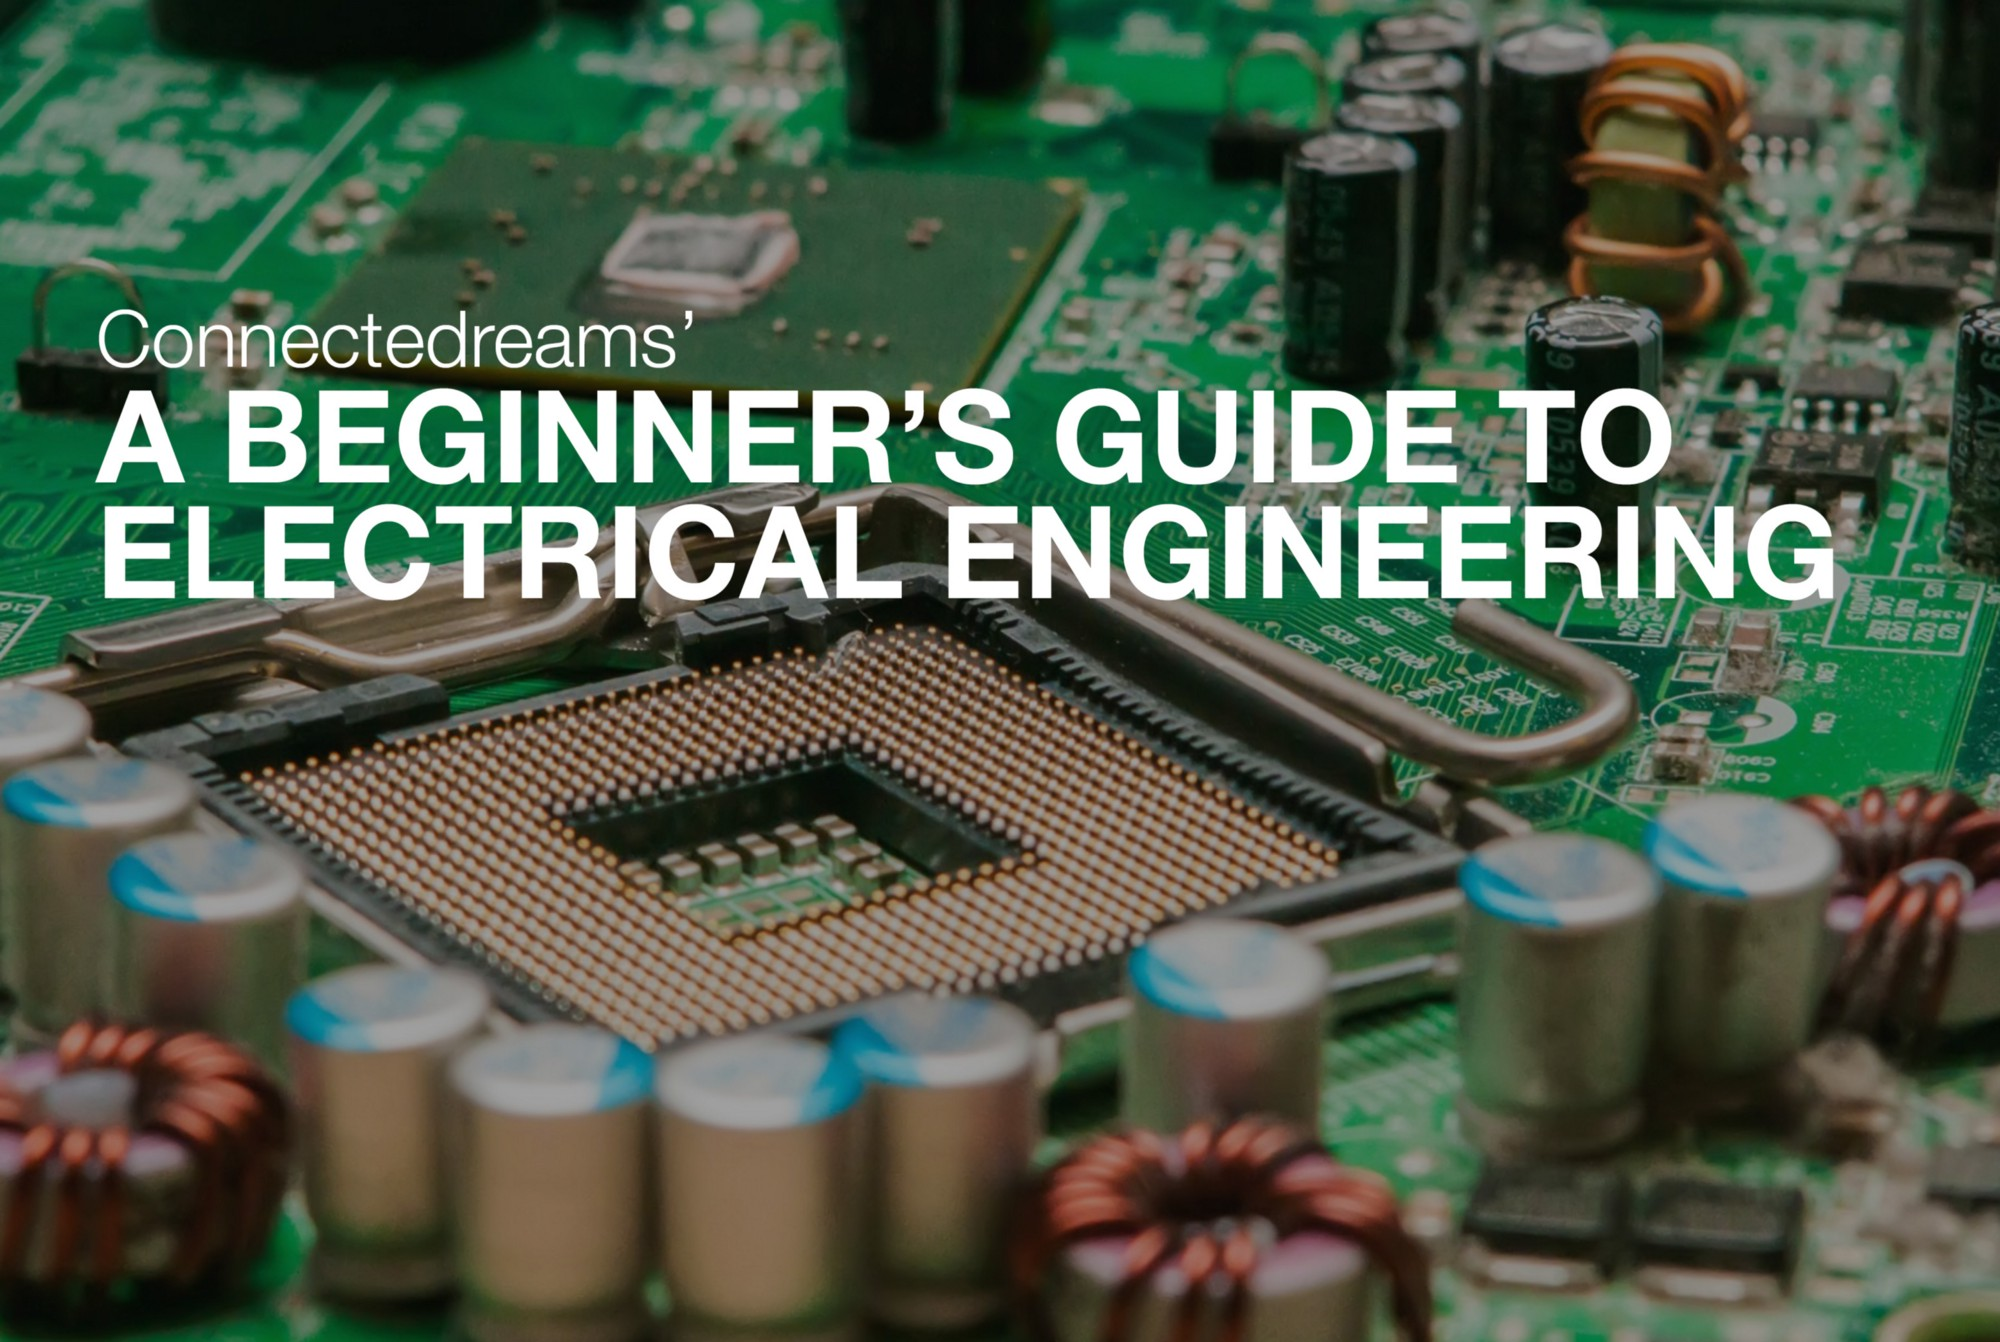 A Beginners Guide To Electrical Engineering Connectedreams Blog In The Circuit At Chip Diagrams As When Wiring Your Medium